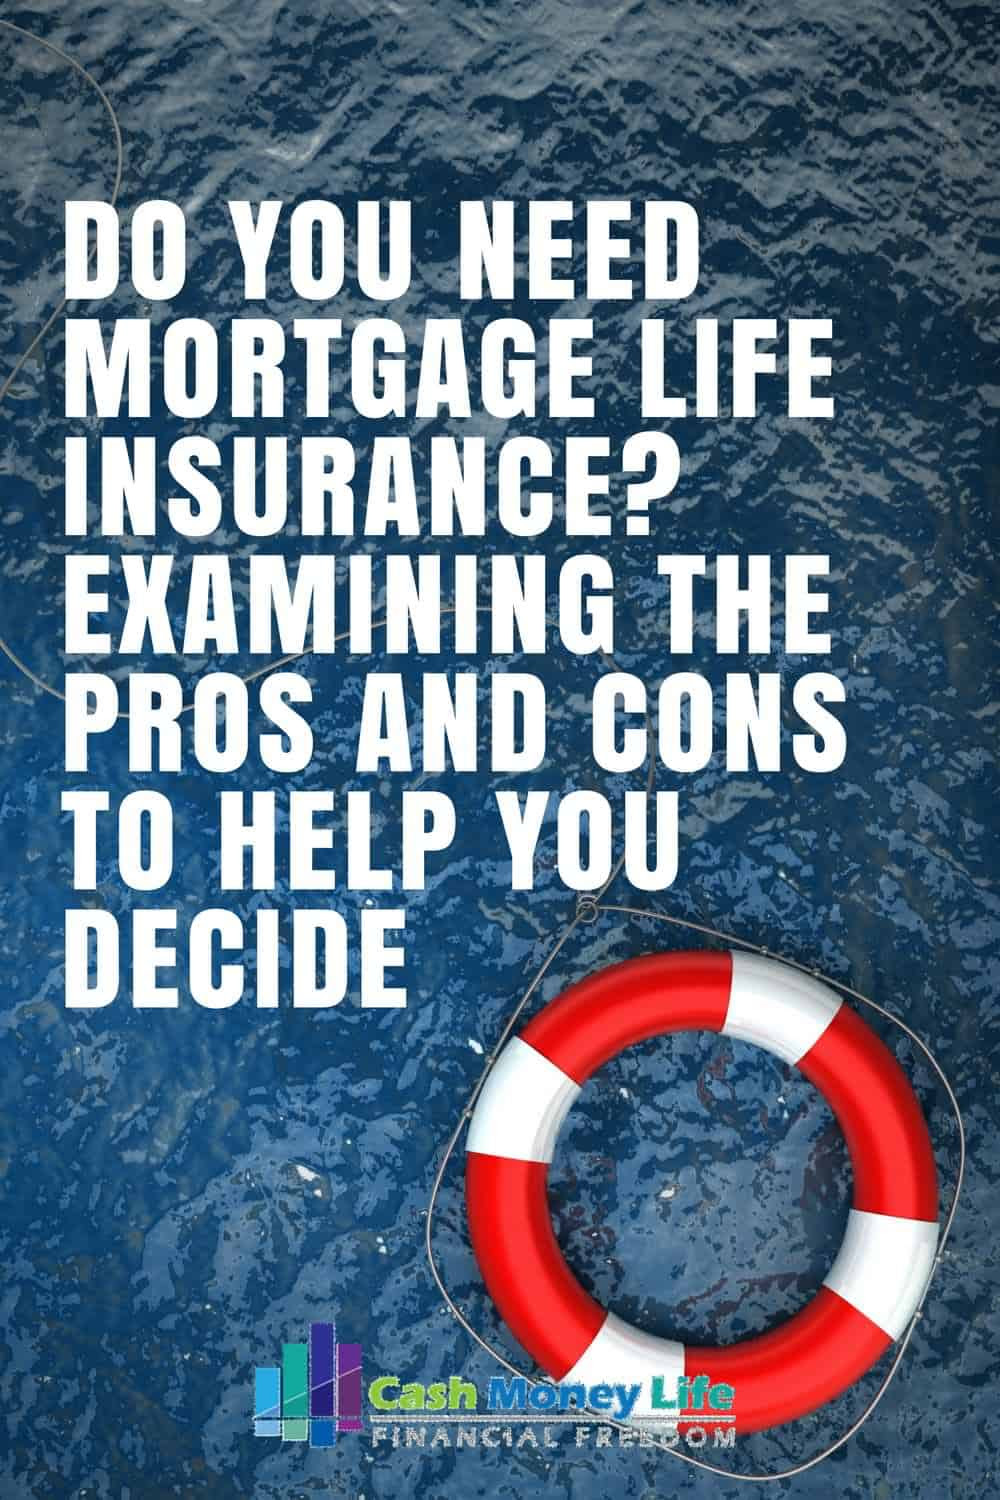 Pros and Cons of Mortgage Life Insurance - Cash Money Life